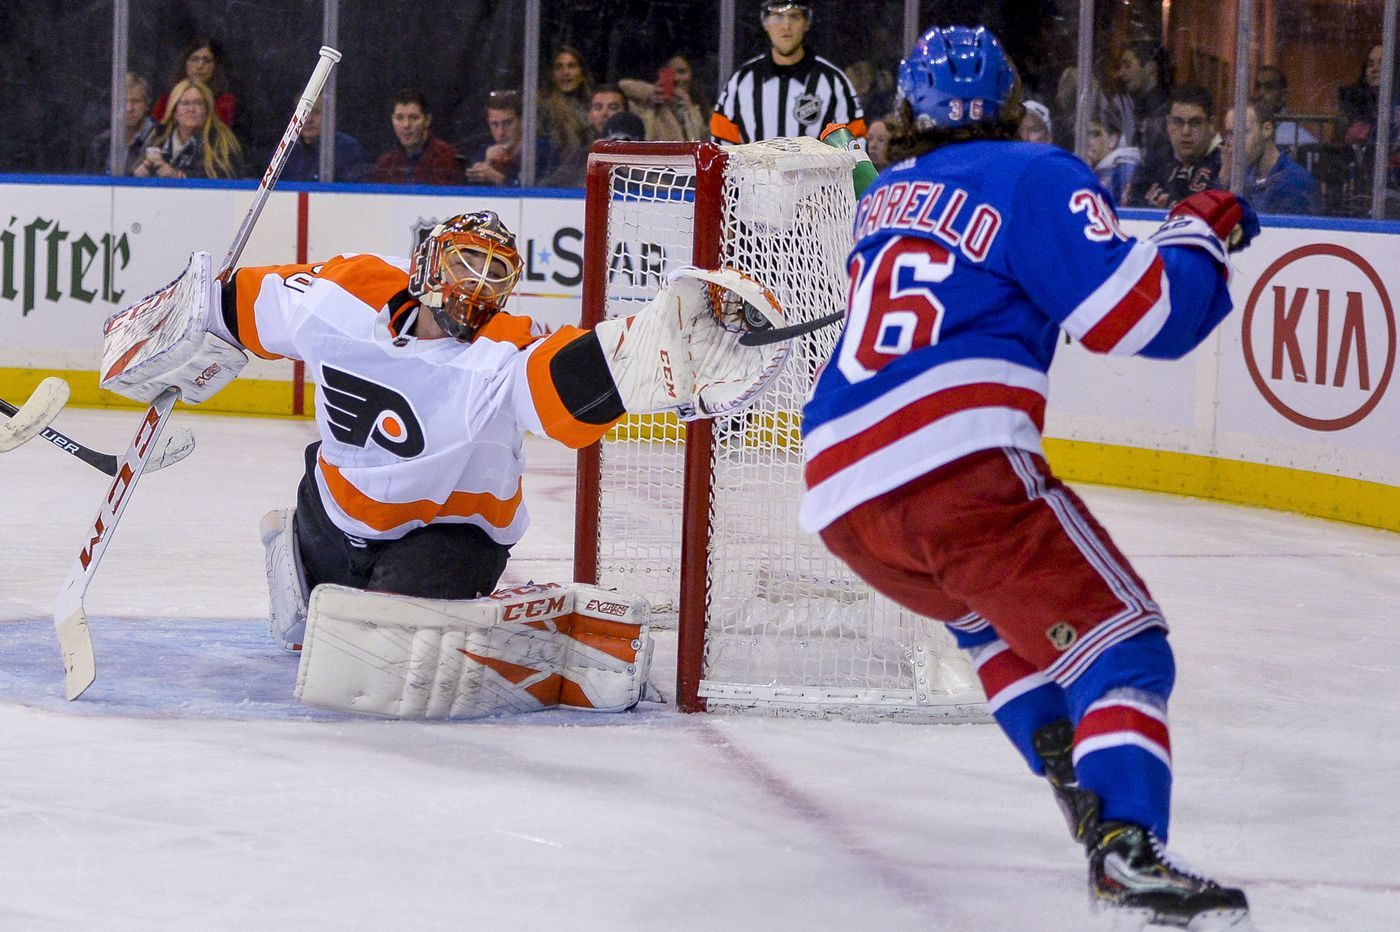 Michal Neuvirth impressive in goal as Flyers beat Rangers in shootout